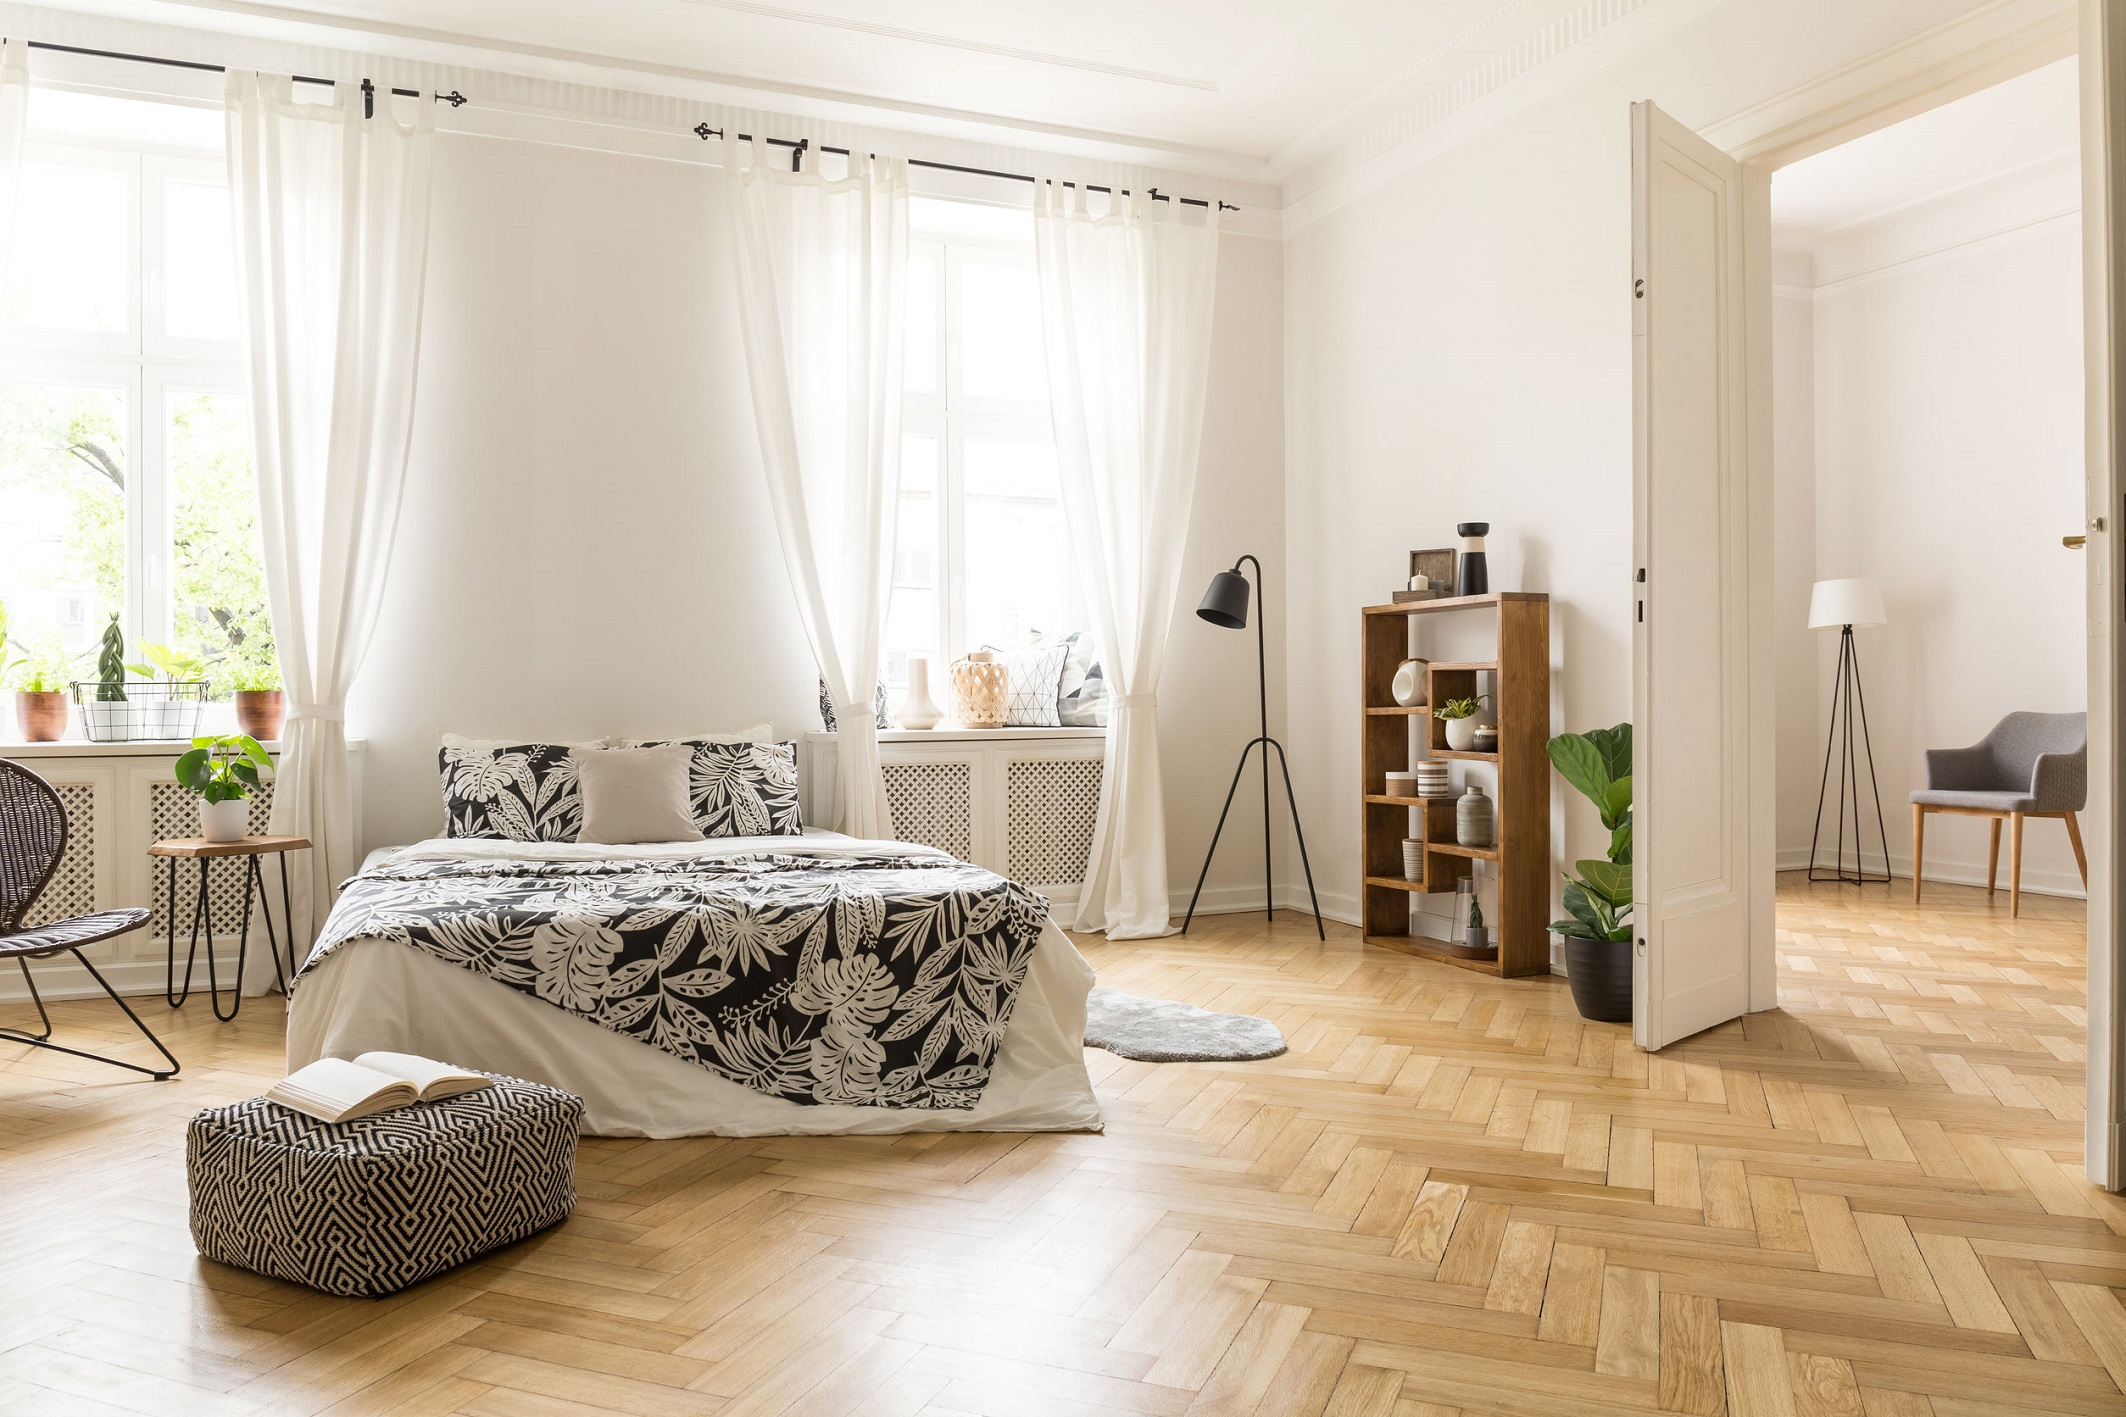 View at two rooms with white walls and herringbone parquet. A bed, a pouf, lamp bookcase and armchair in a natural style apartment interior. Real photo.